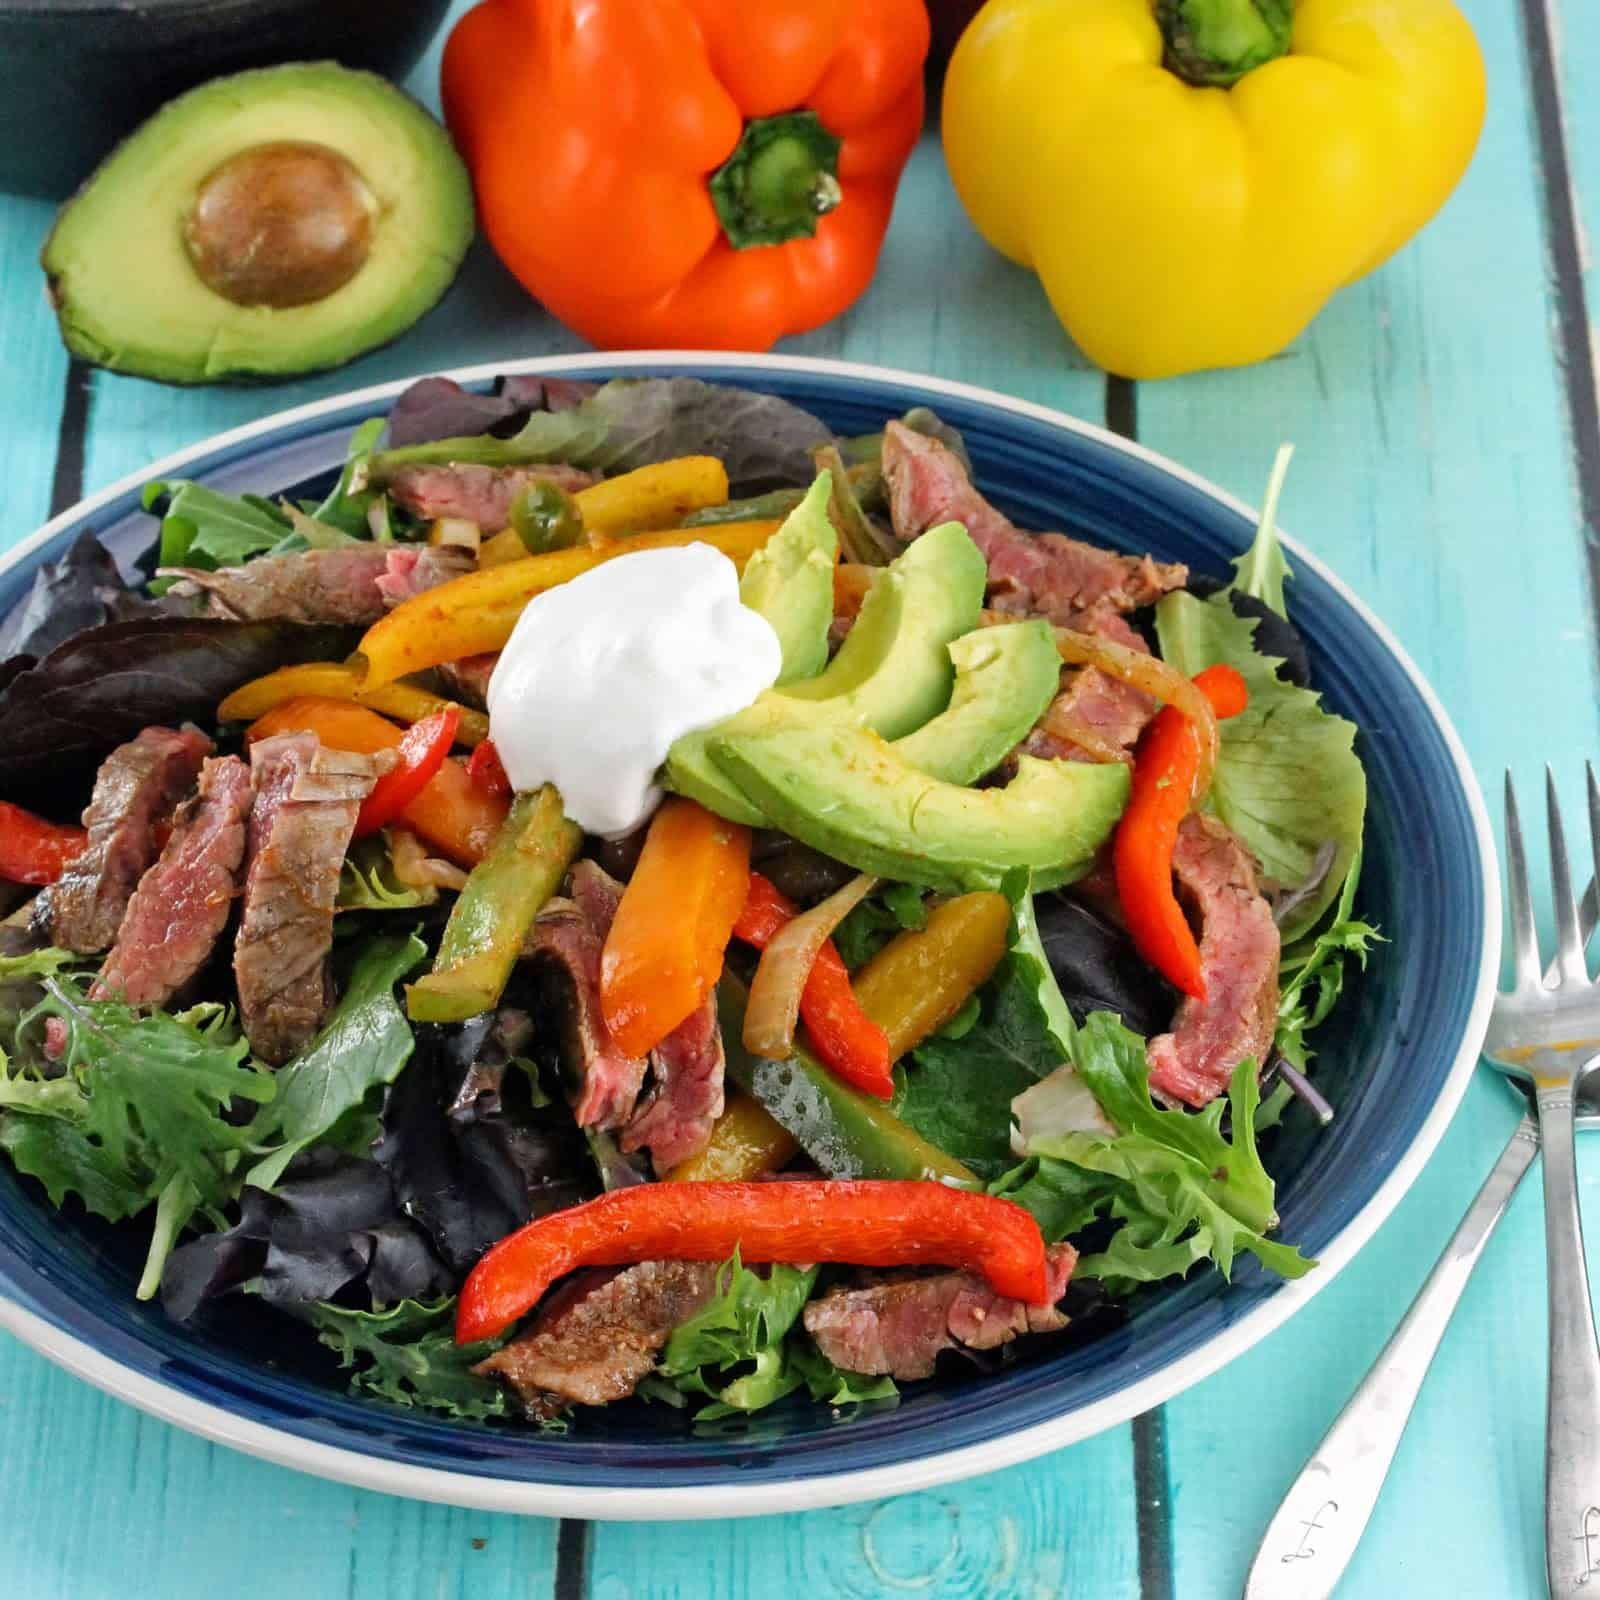 Skinny Fajita Salad served up with grilled flank steak, fresh avocado and bell peppers over a bed of lettuce and topped with a dollop of sour cream